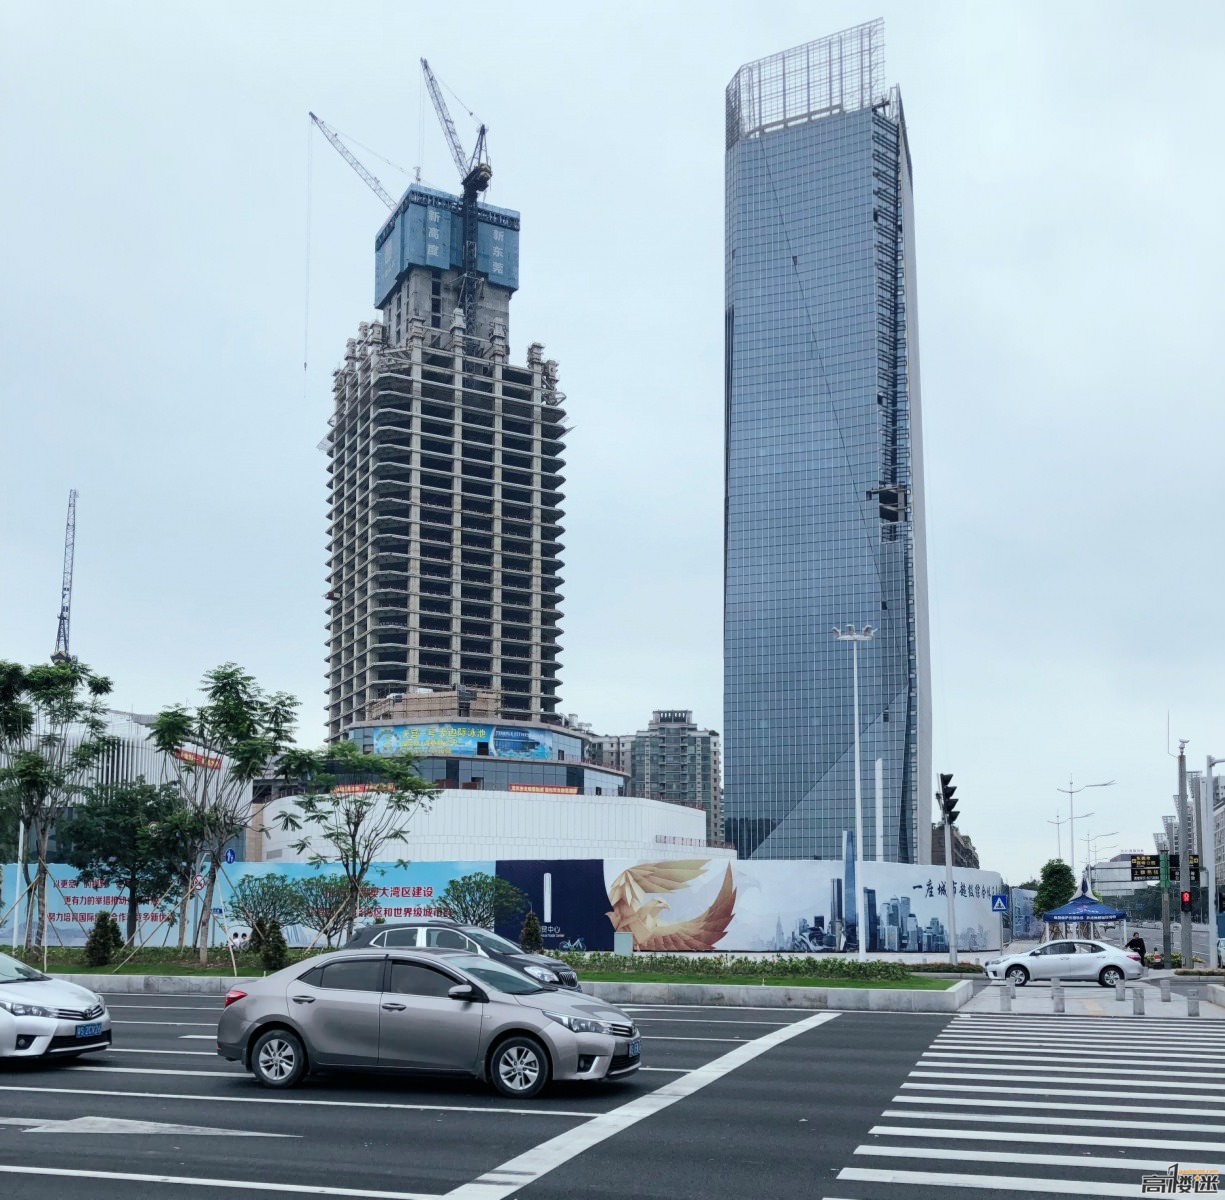 Dongguan International Trade Center Nears Completion